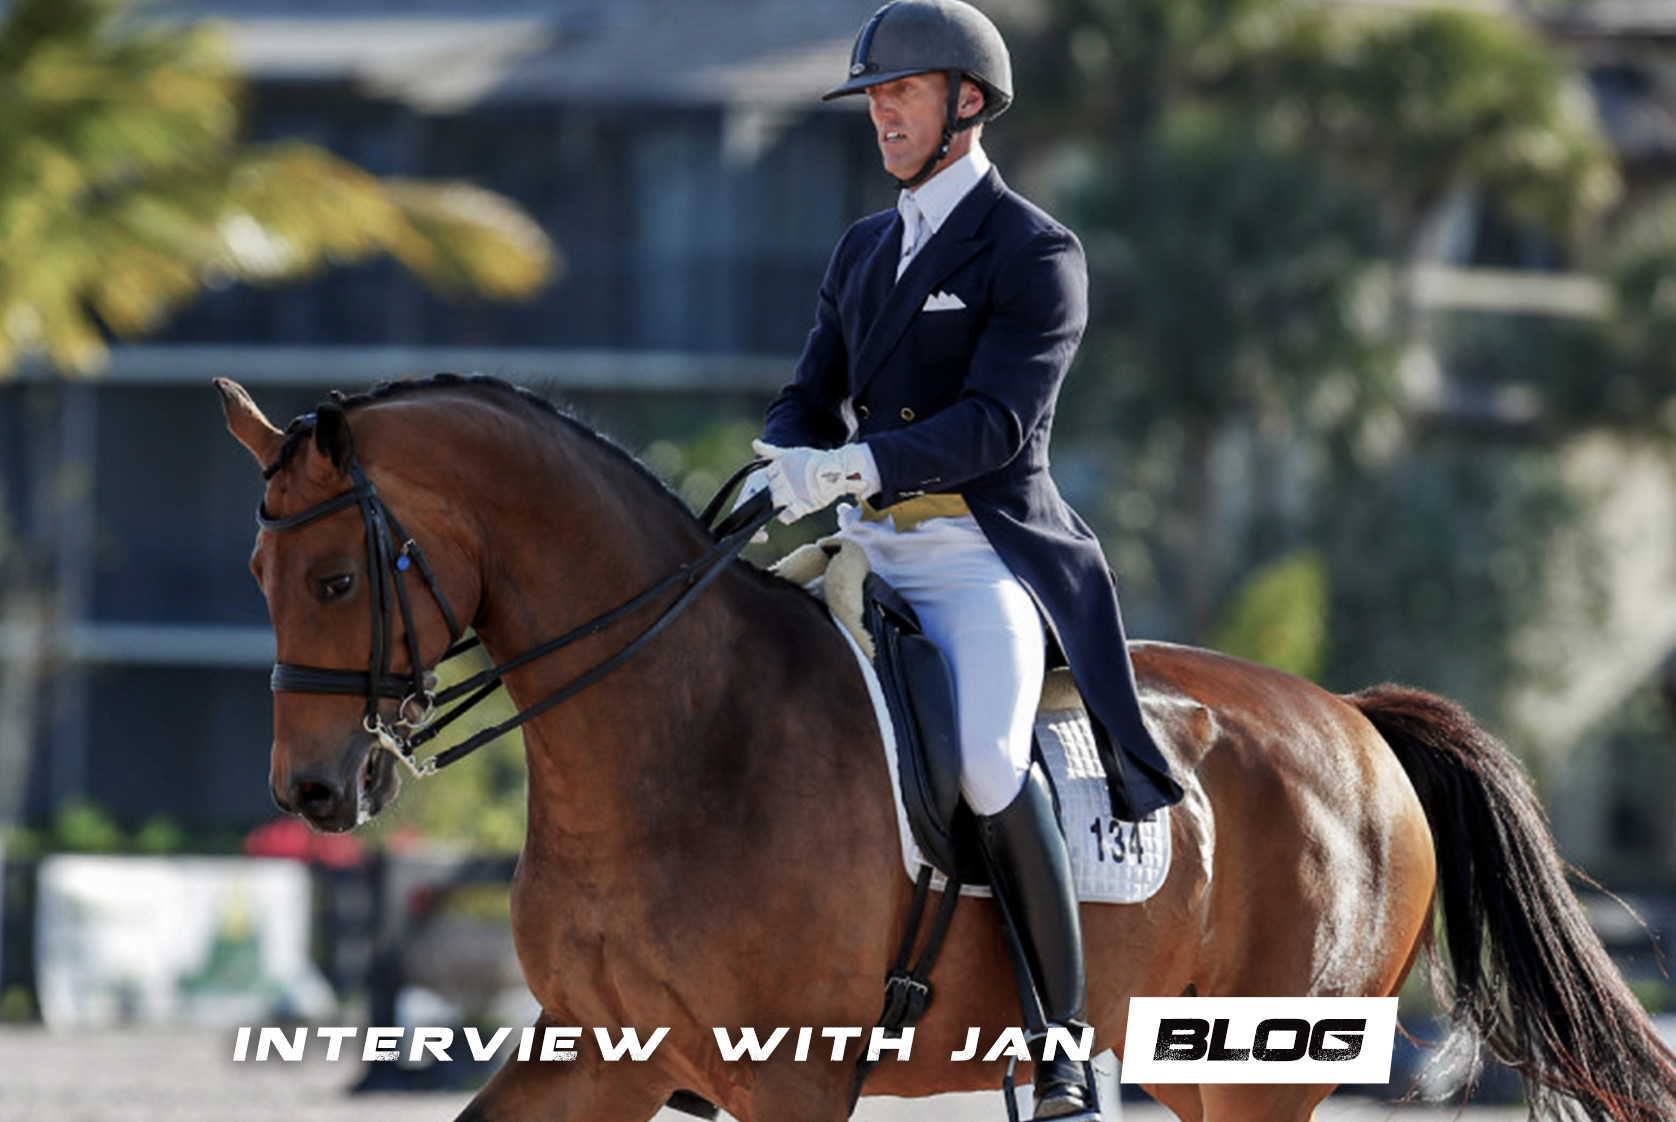 Jan Brons on Dressage and Physical Fitness